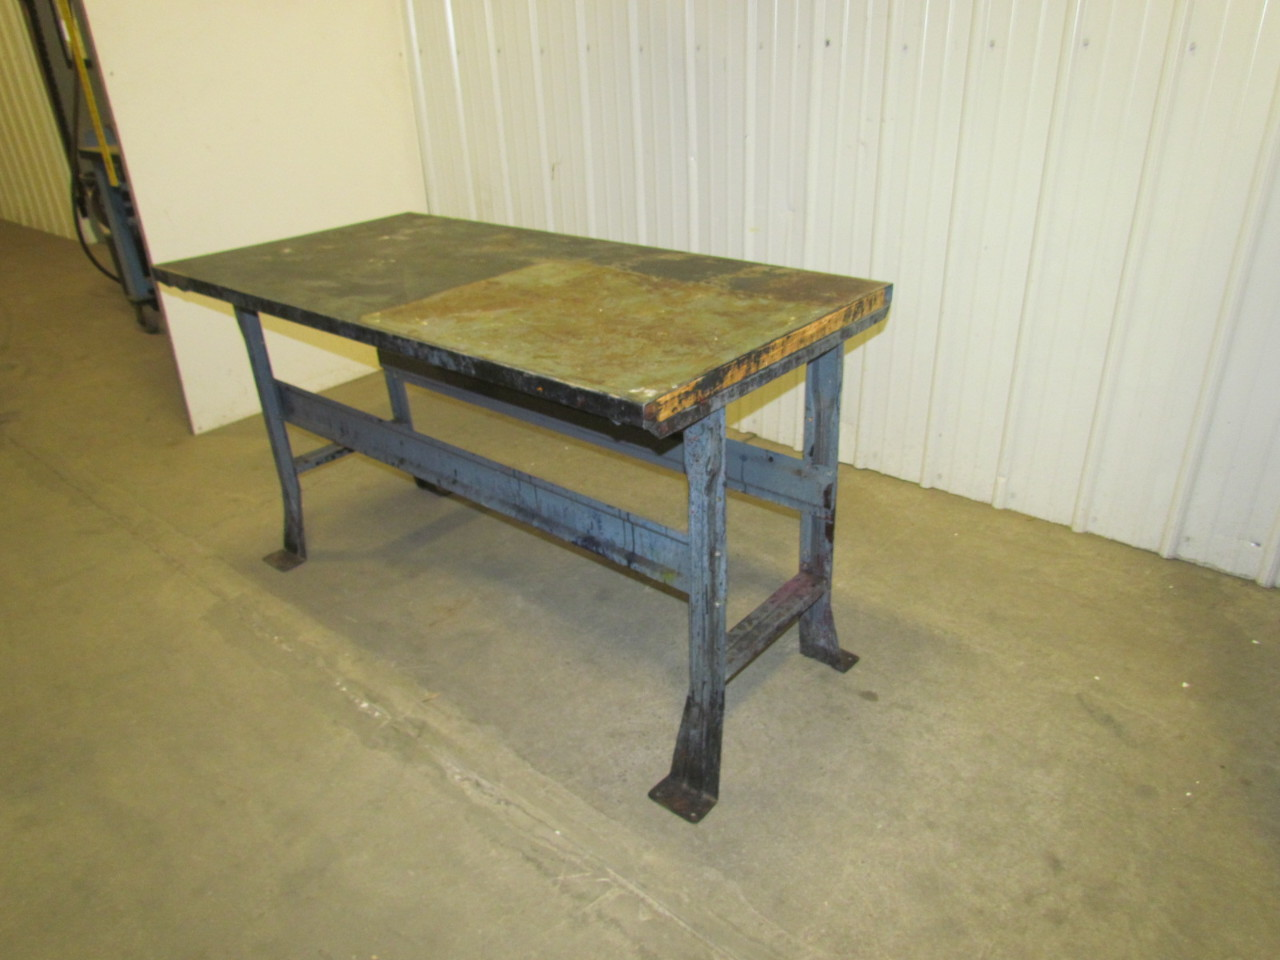 4 Leg Steel Workbench Table Vintage Industrial Gray 60 X30 X33 Height Ebay